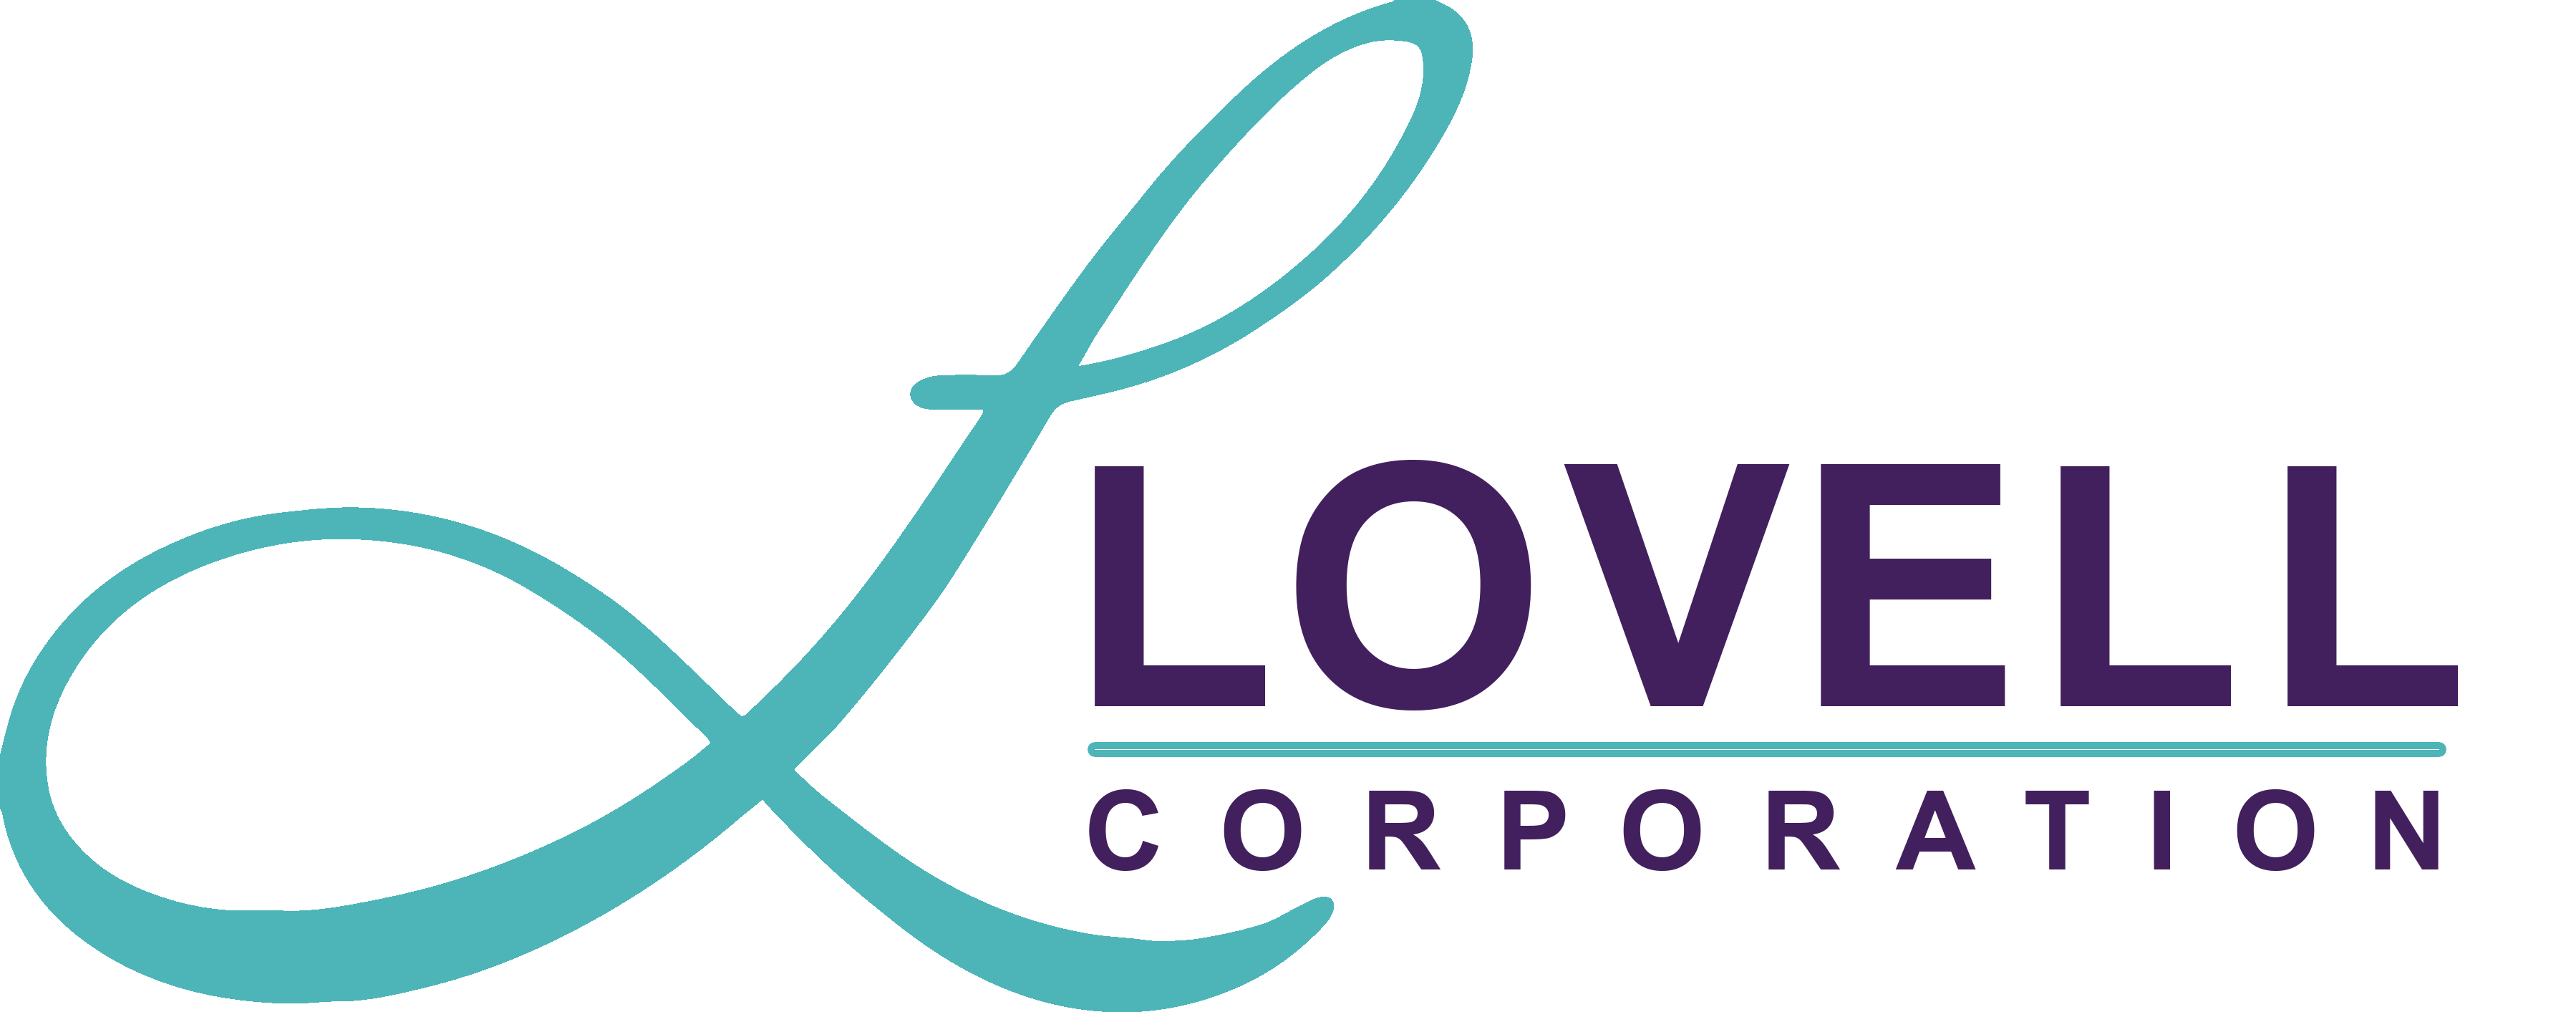 Lovell Corporation Logo (teal L with purple text)